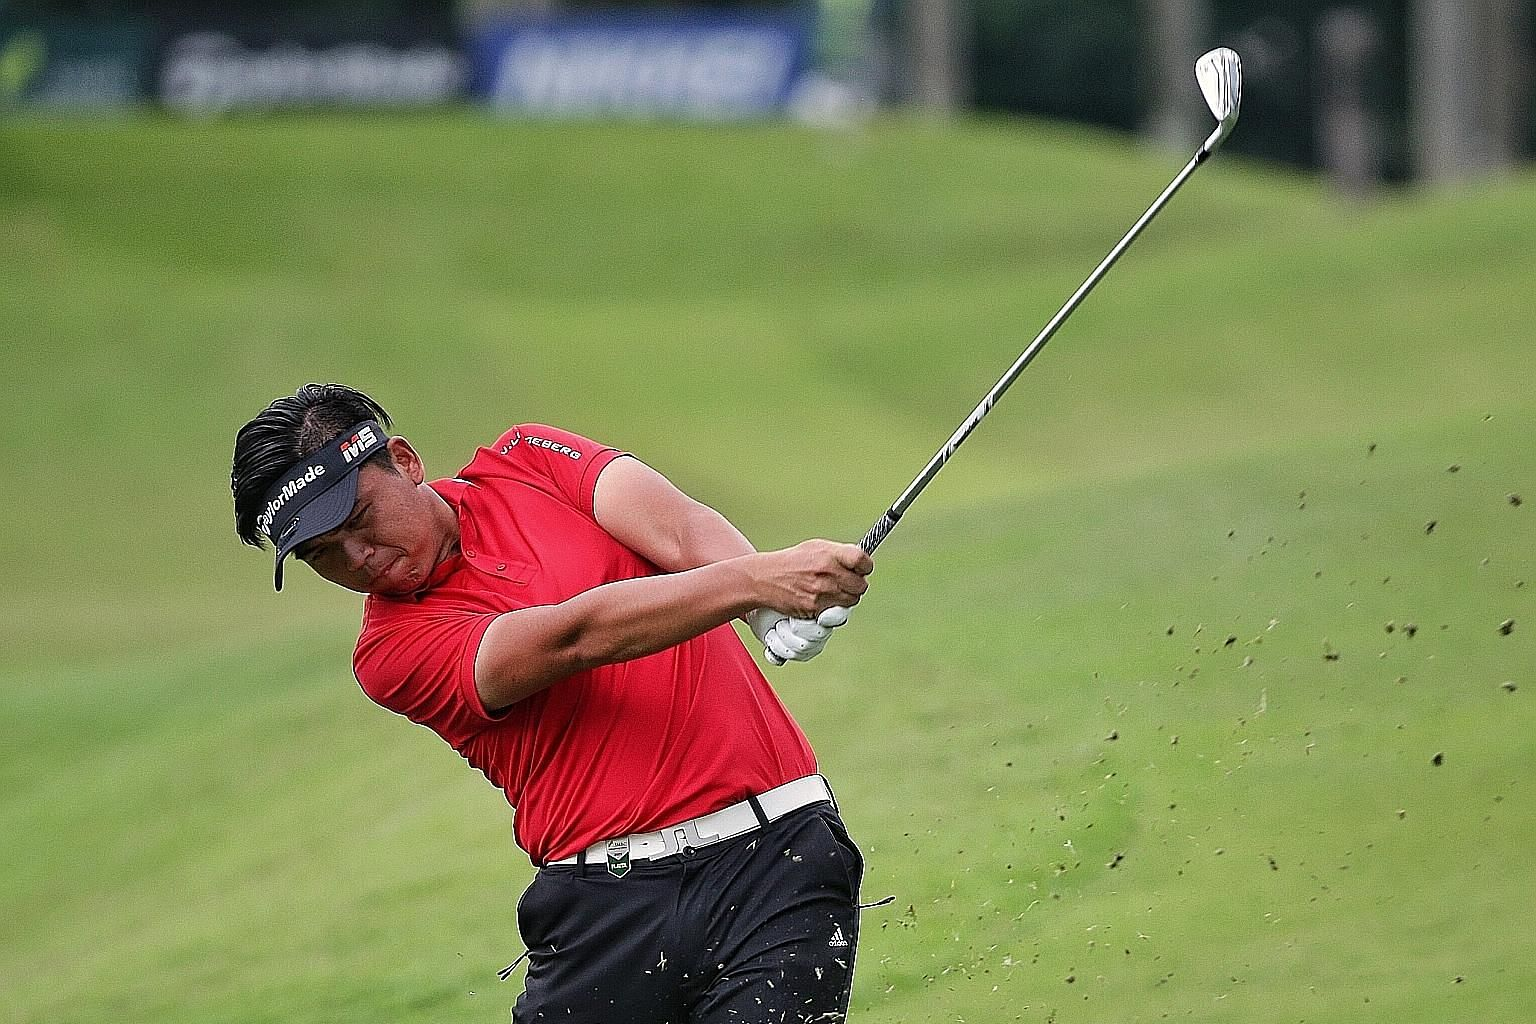 Hung Chien-yao of Chinese Taipei on the ninth hole during the first round of the SMBC Singapore Open. He signed for a five-under 66 after recording an eagle and four birdies to go with a bogey.